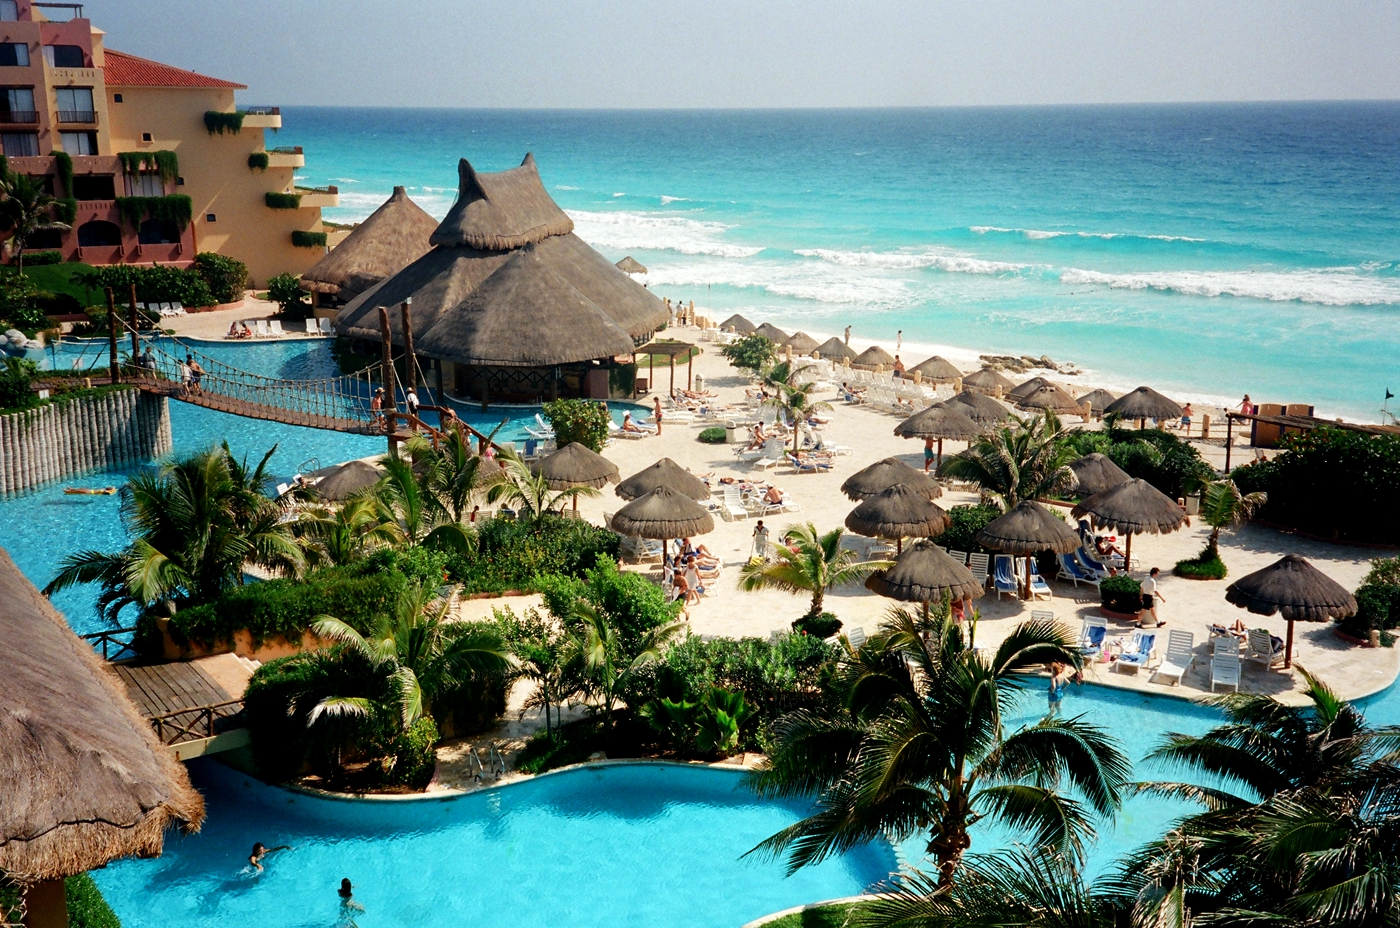 Cancun  Top Attraction Place Of Mexico  World For Travel